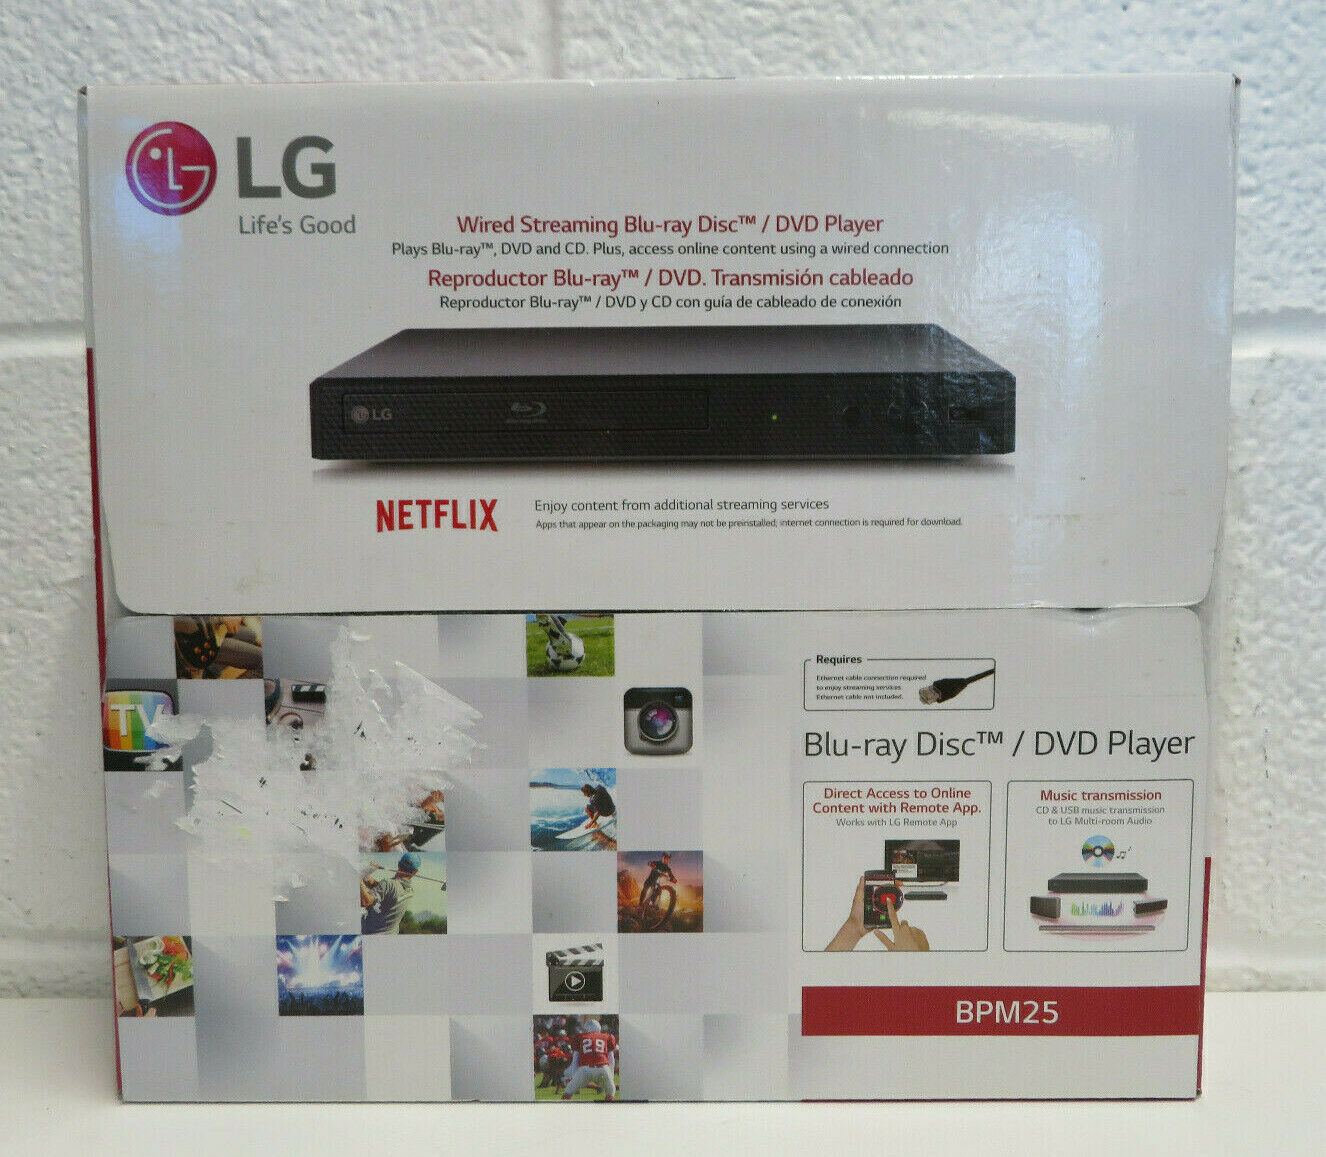 LG Blu-ray DVD CD Player Wired with Streaming Services - BPM25 BRAND NEW bpm25 brand dvd new player services streaming wired with